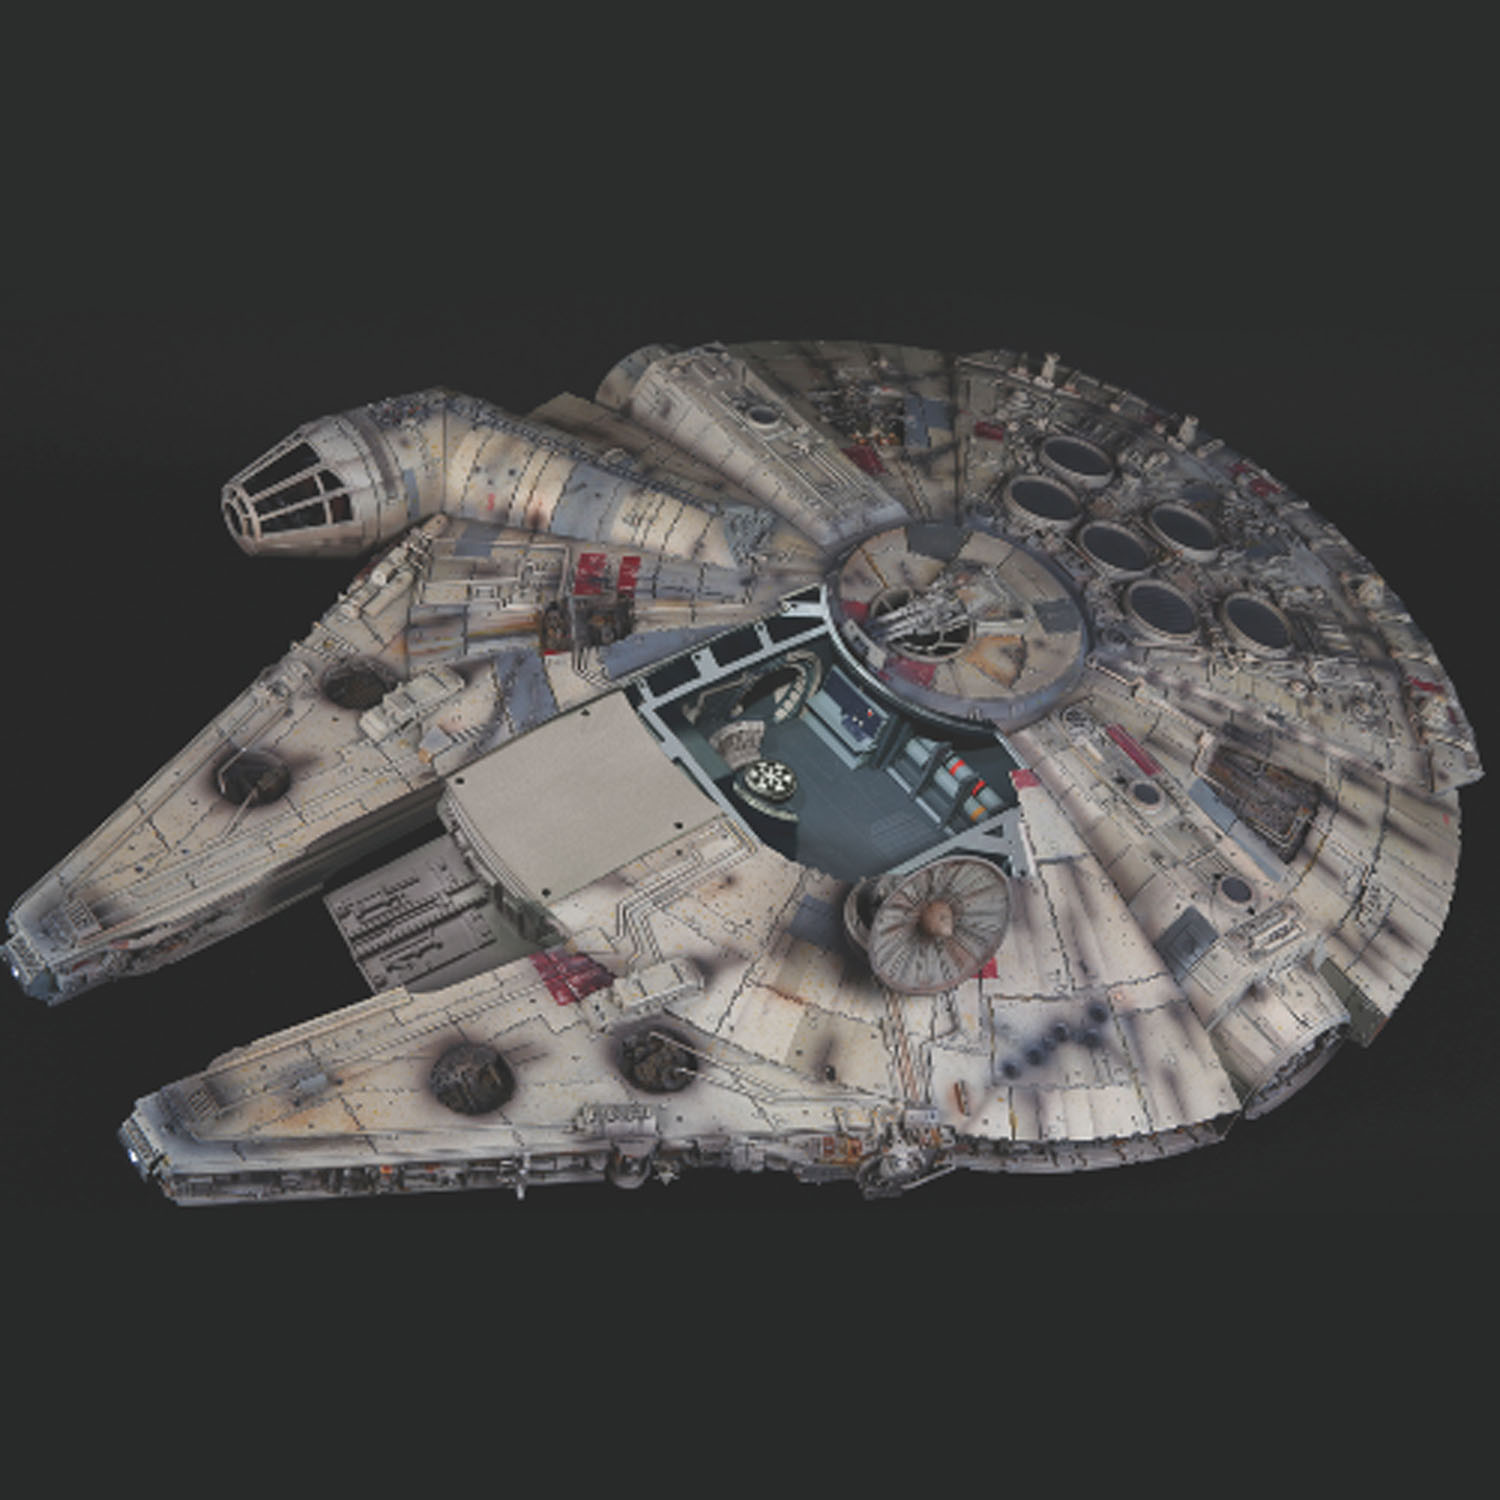 military rc planes with Build The Millennium Falcon Model on Attachment besides Watch as well Build The Millennium Falcon Model furthermore The Millennium Falcon Five Facts Every Star Wars Fan Should Know also Build The Akagi Full Kit.